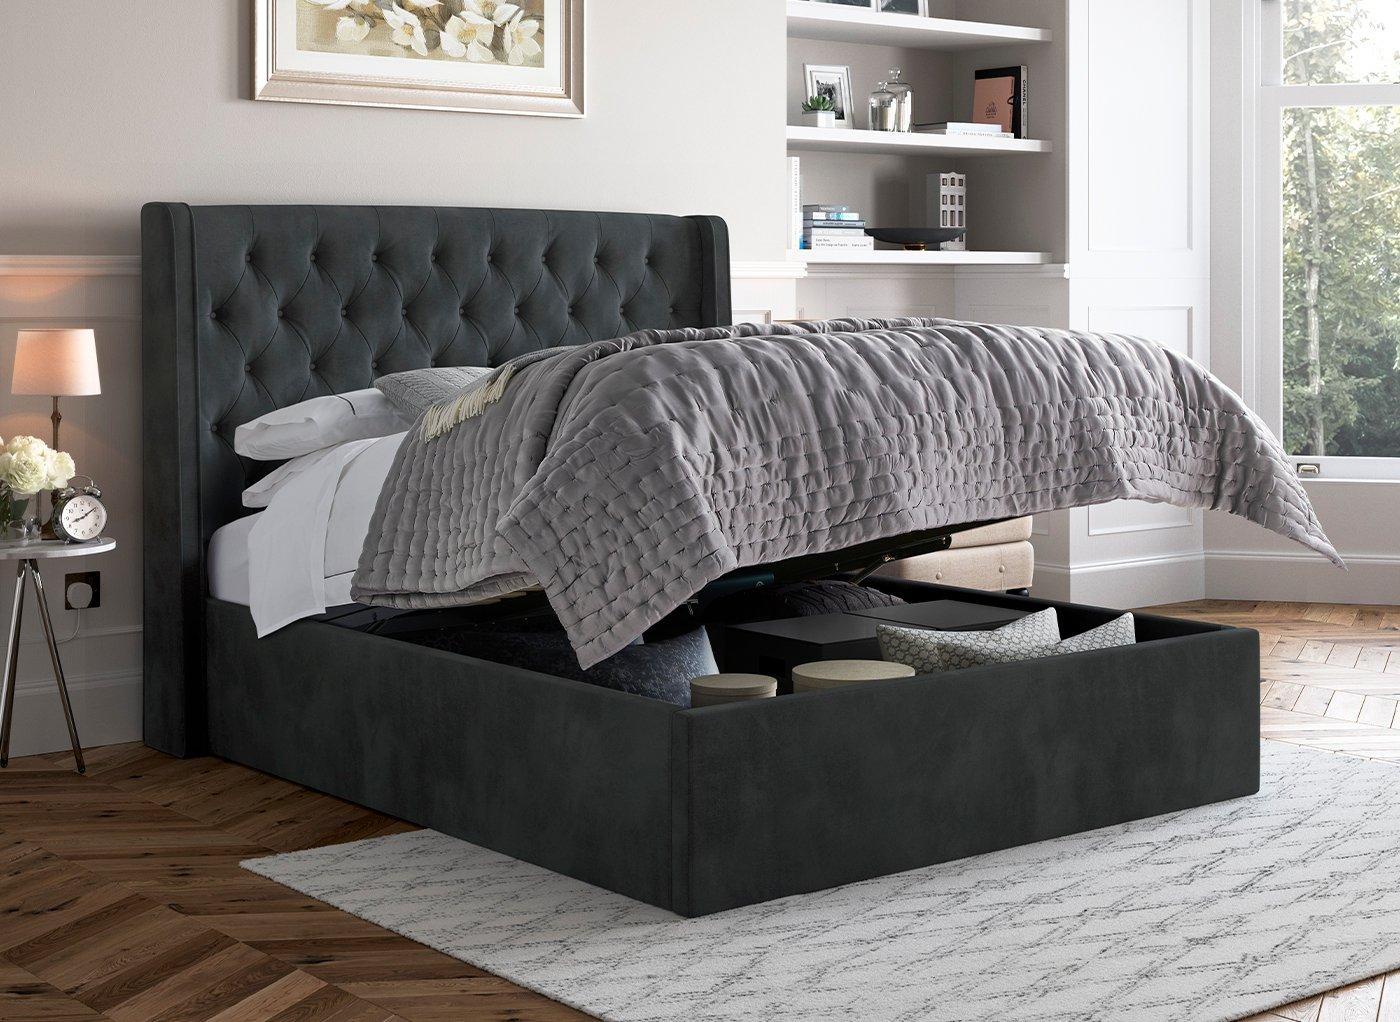 Excellent Deacon Fabric Upholstered Ottoman Bed Frame Andrewgaddart Wooden Chair Designs For Living Room Andrewgaddartcom